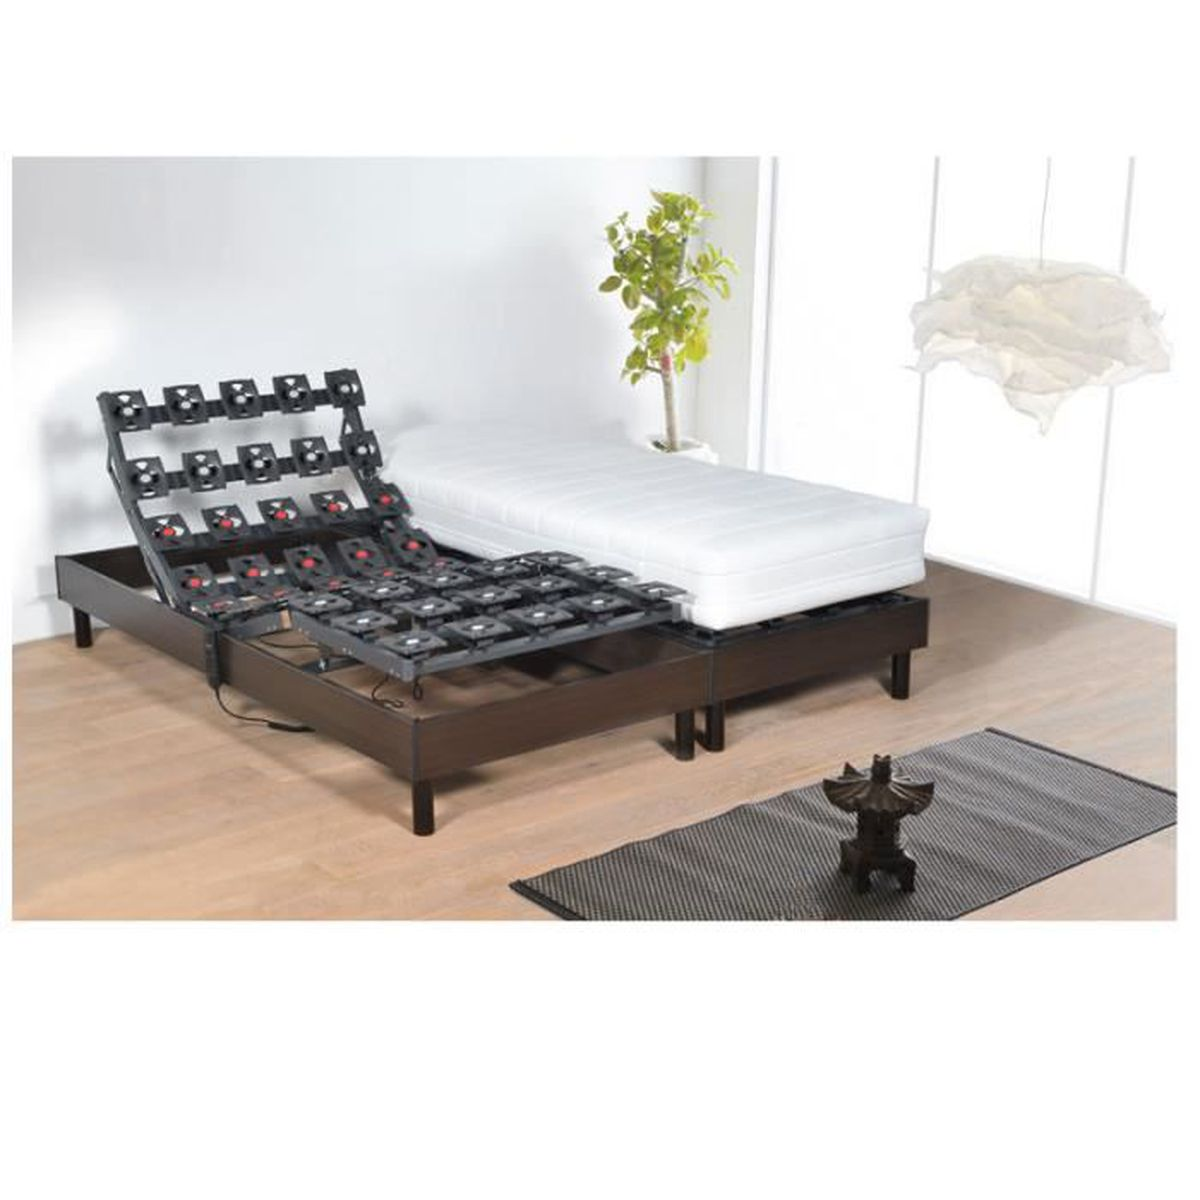 alitea relax ensemble lectrique ensemble virtuose viscospring 2x90x200 achat vente. Black Bedroom Furniture Sets. Home Design Ideas